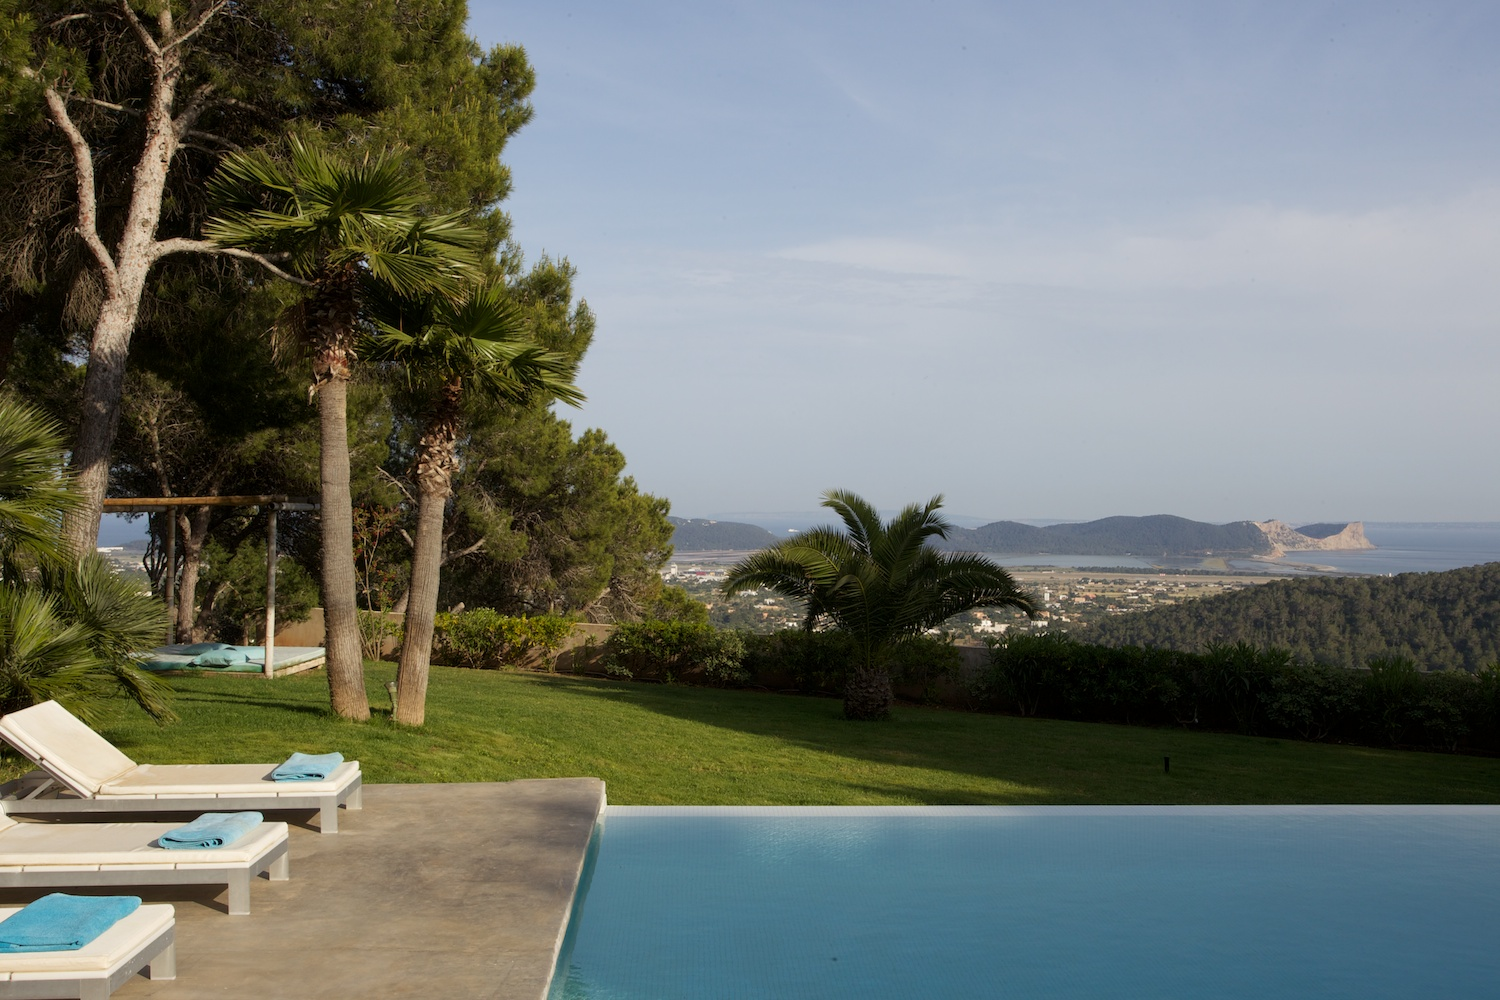 Ibiza Luxury Villas for Sale Over 3 Million Euros